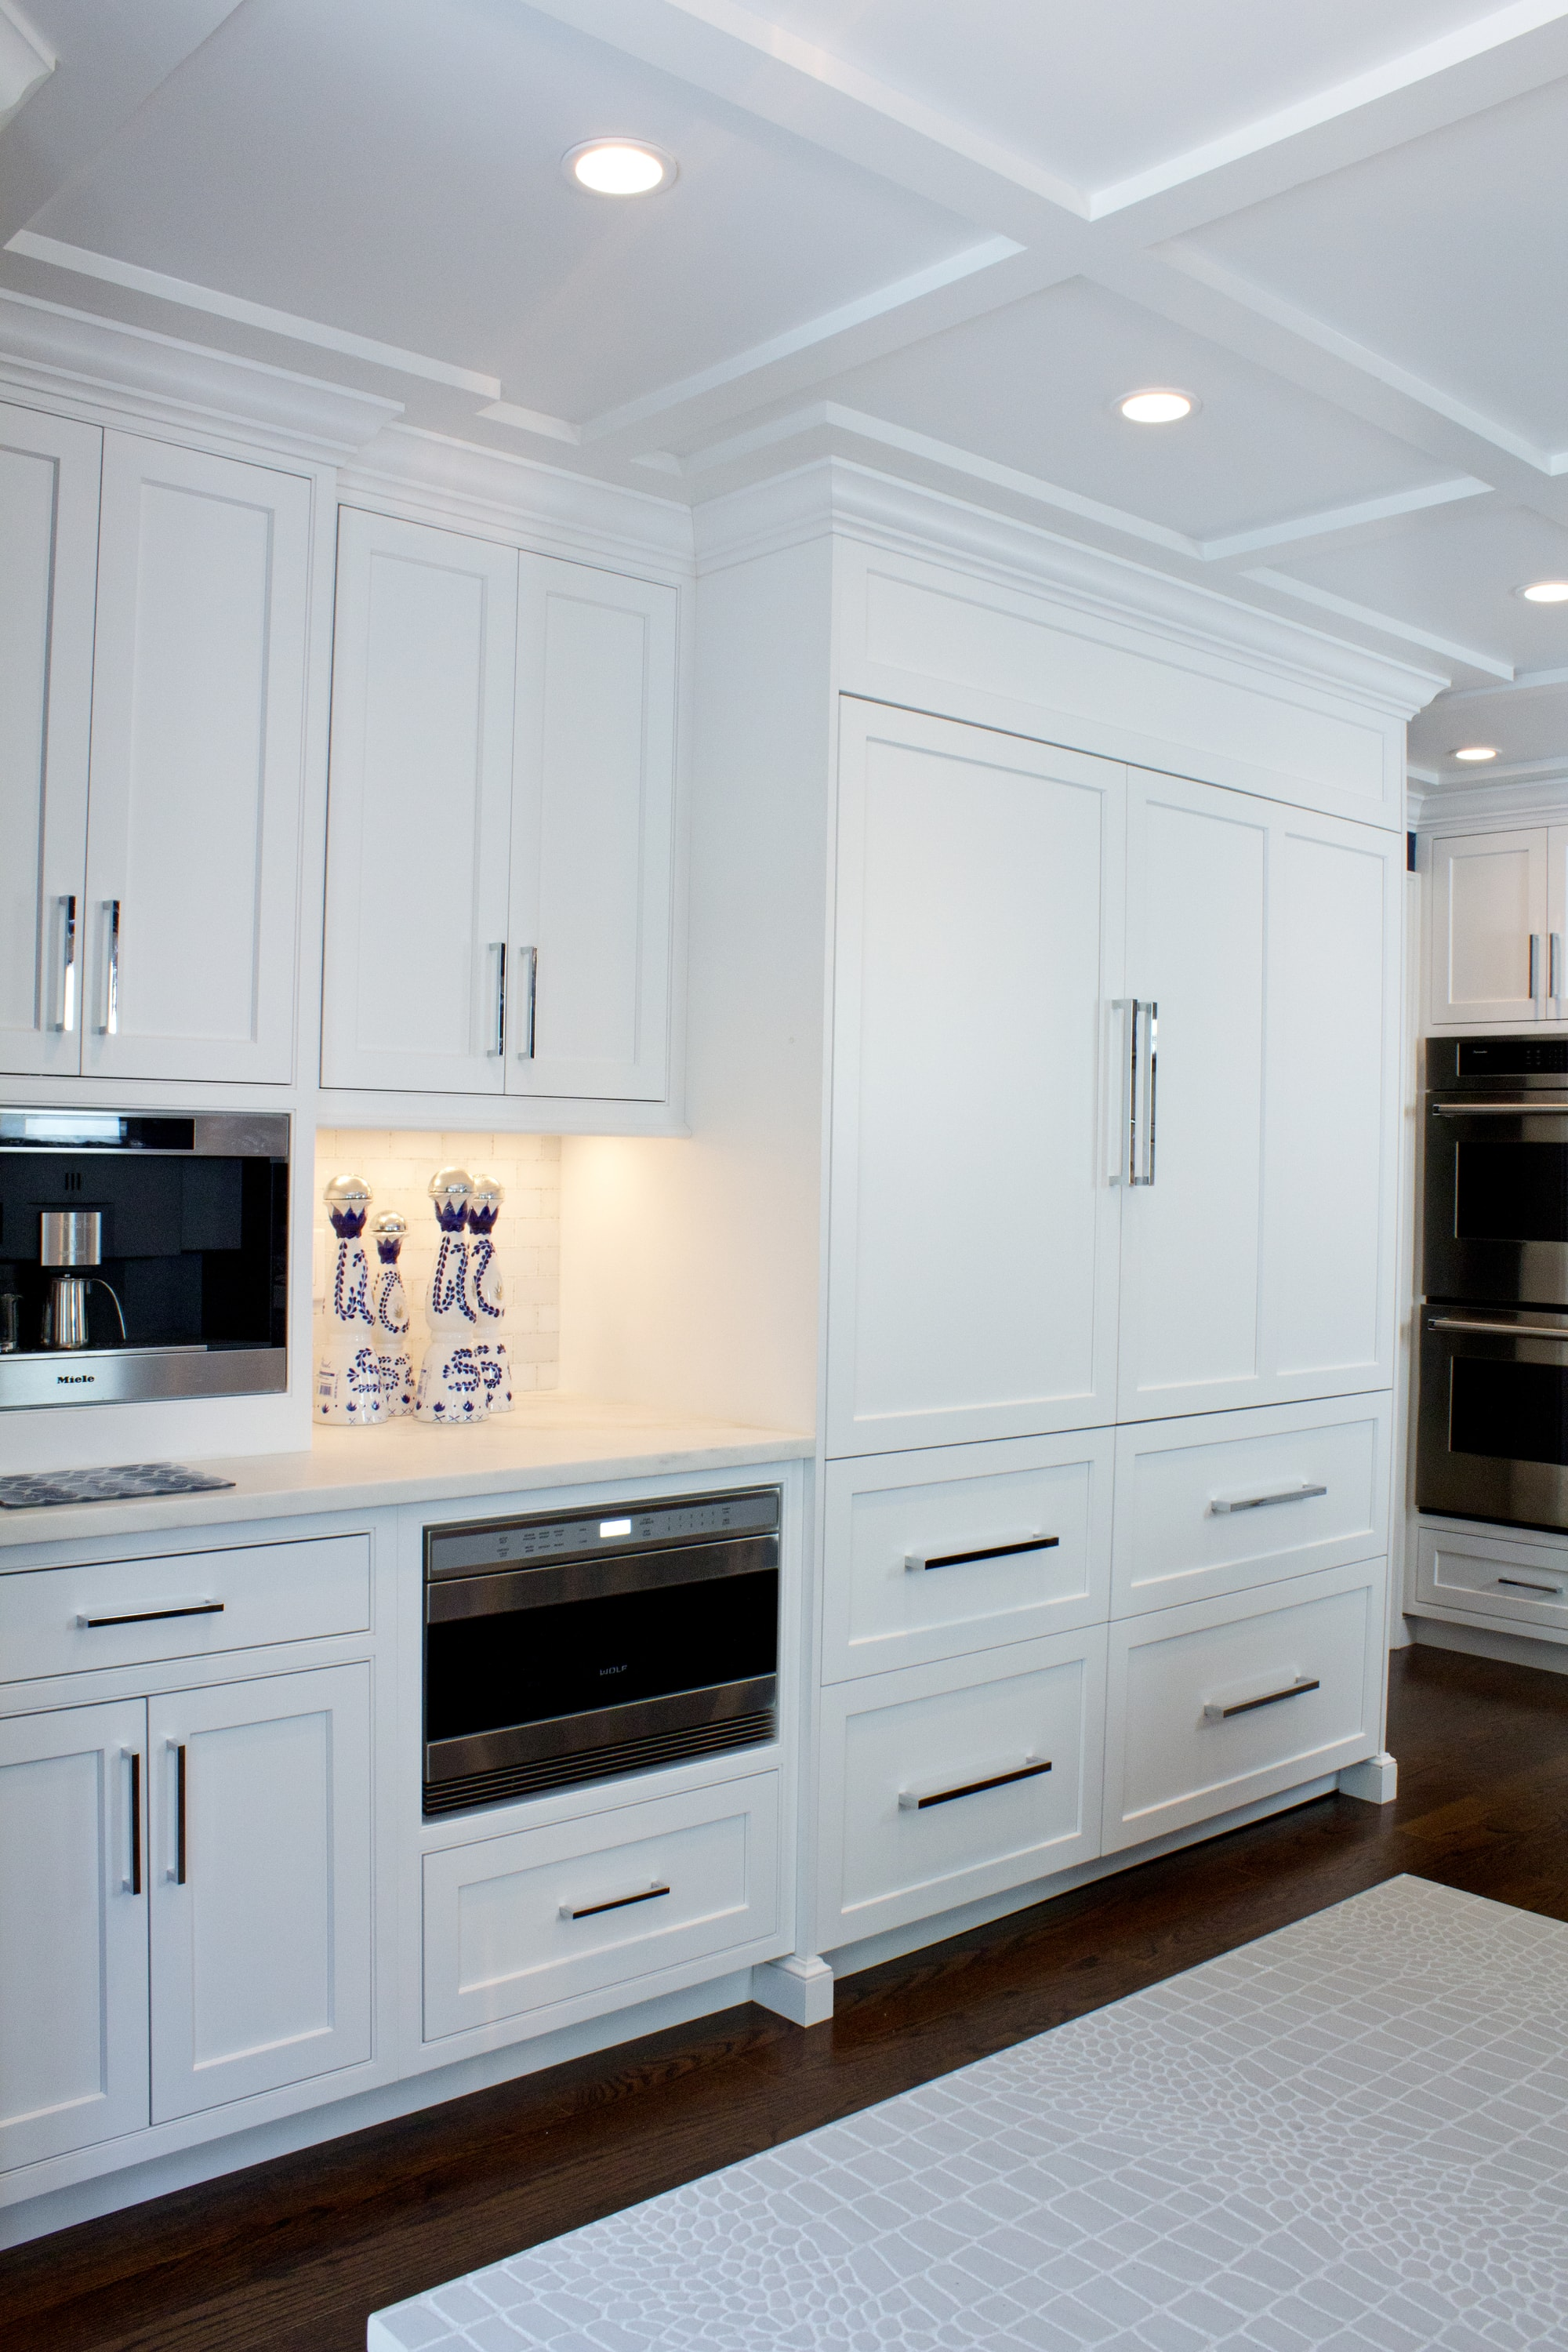 Transitional style kitchen with spacious cabinets and drawers